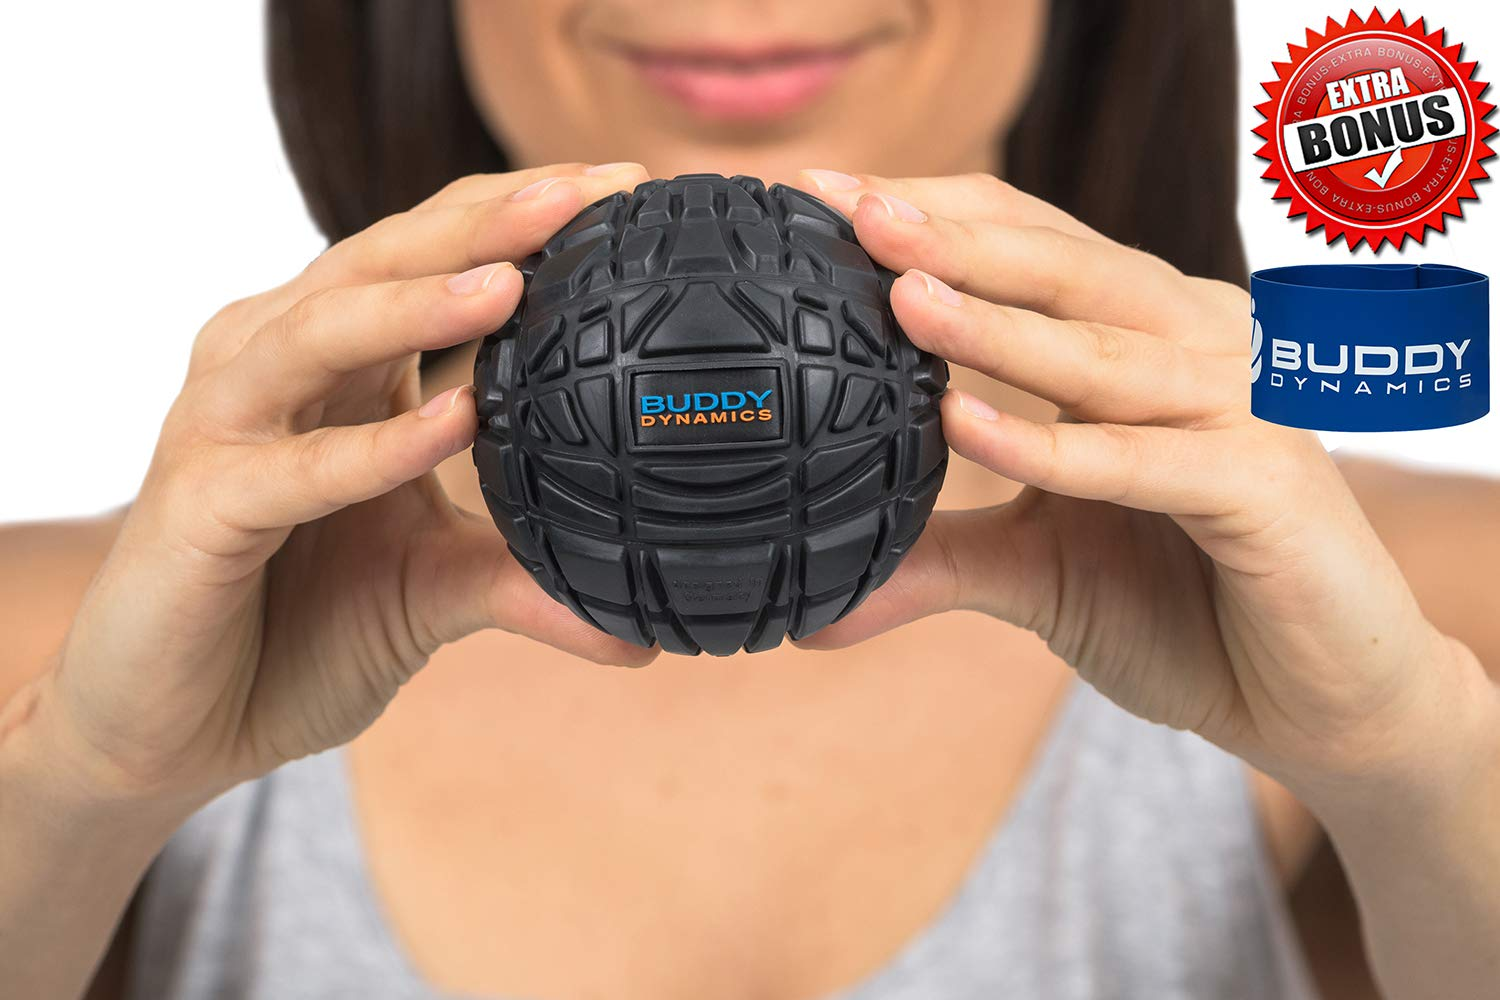 Buddy Dynamics Massage Ball with Resistance Band Included | Deep Tissue, Trigger Point Massage Ball to Fight Sore Muscles | Excellent for Muscle Recovery, Myofascial Release | Therapy Massage Ball